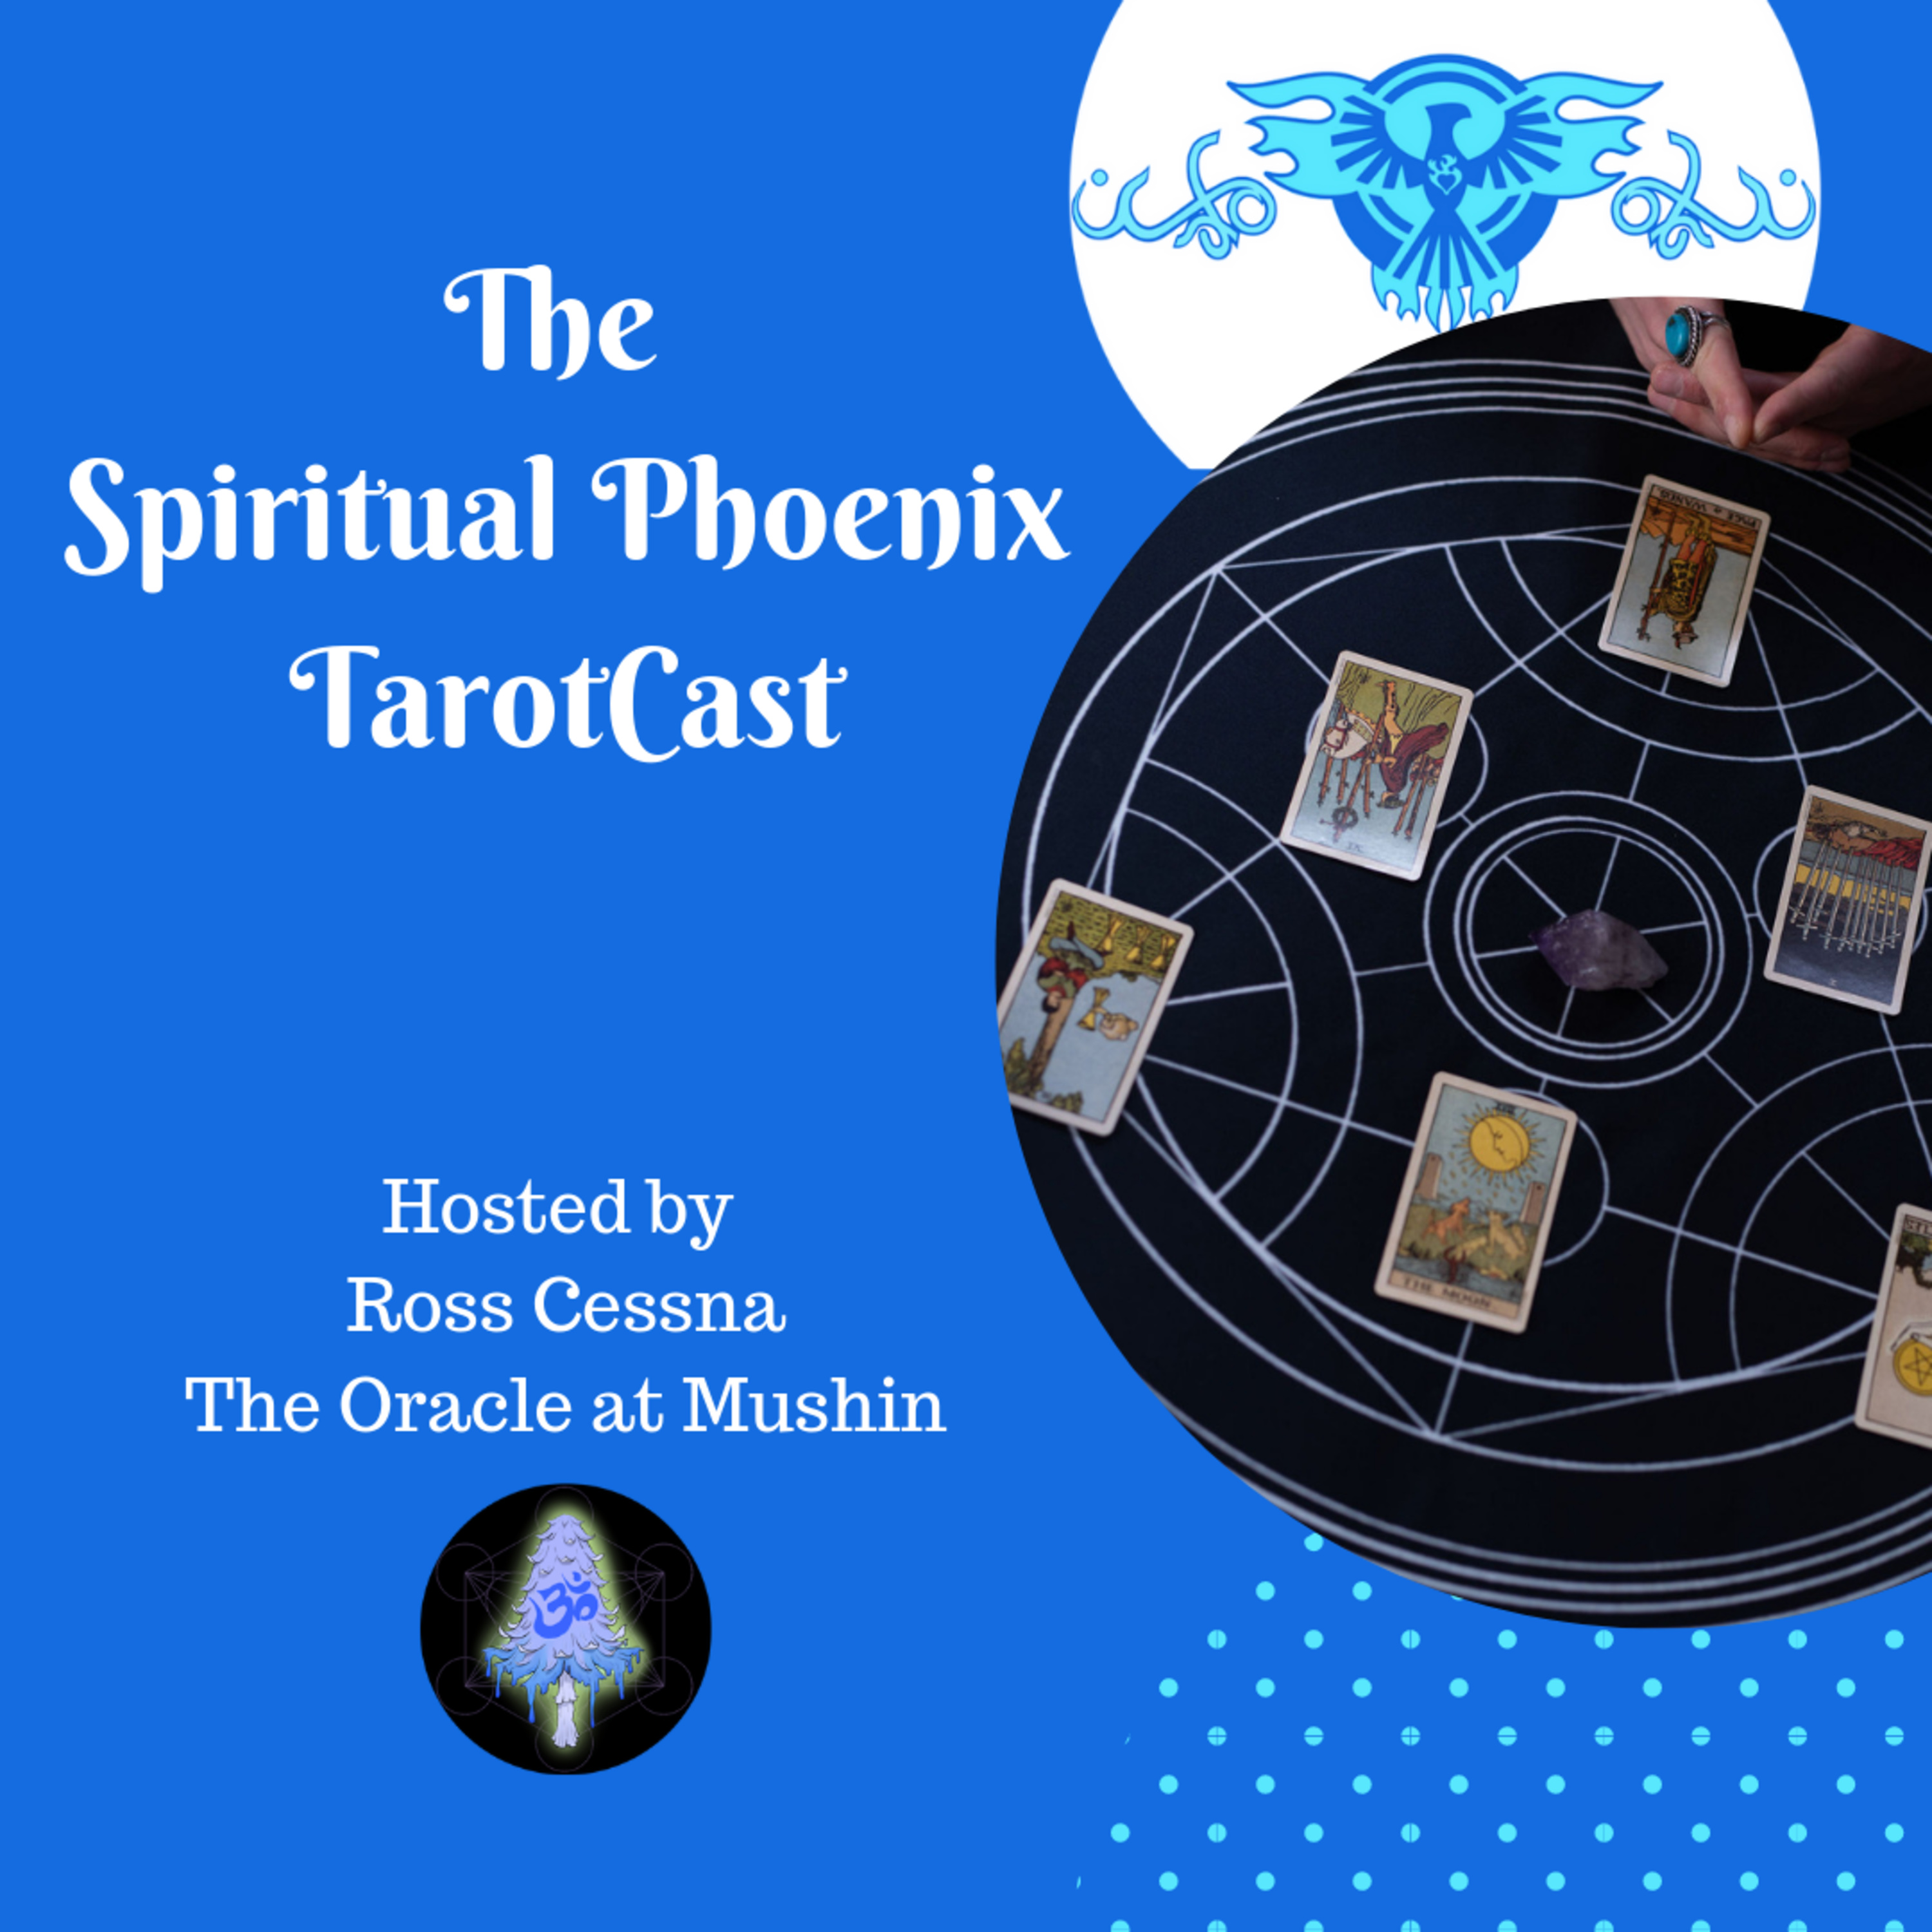 Obstacles, The Wheel, The Sun, Awareness and Humankind | Tarot reading for April 8th